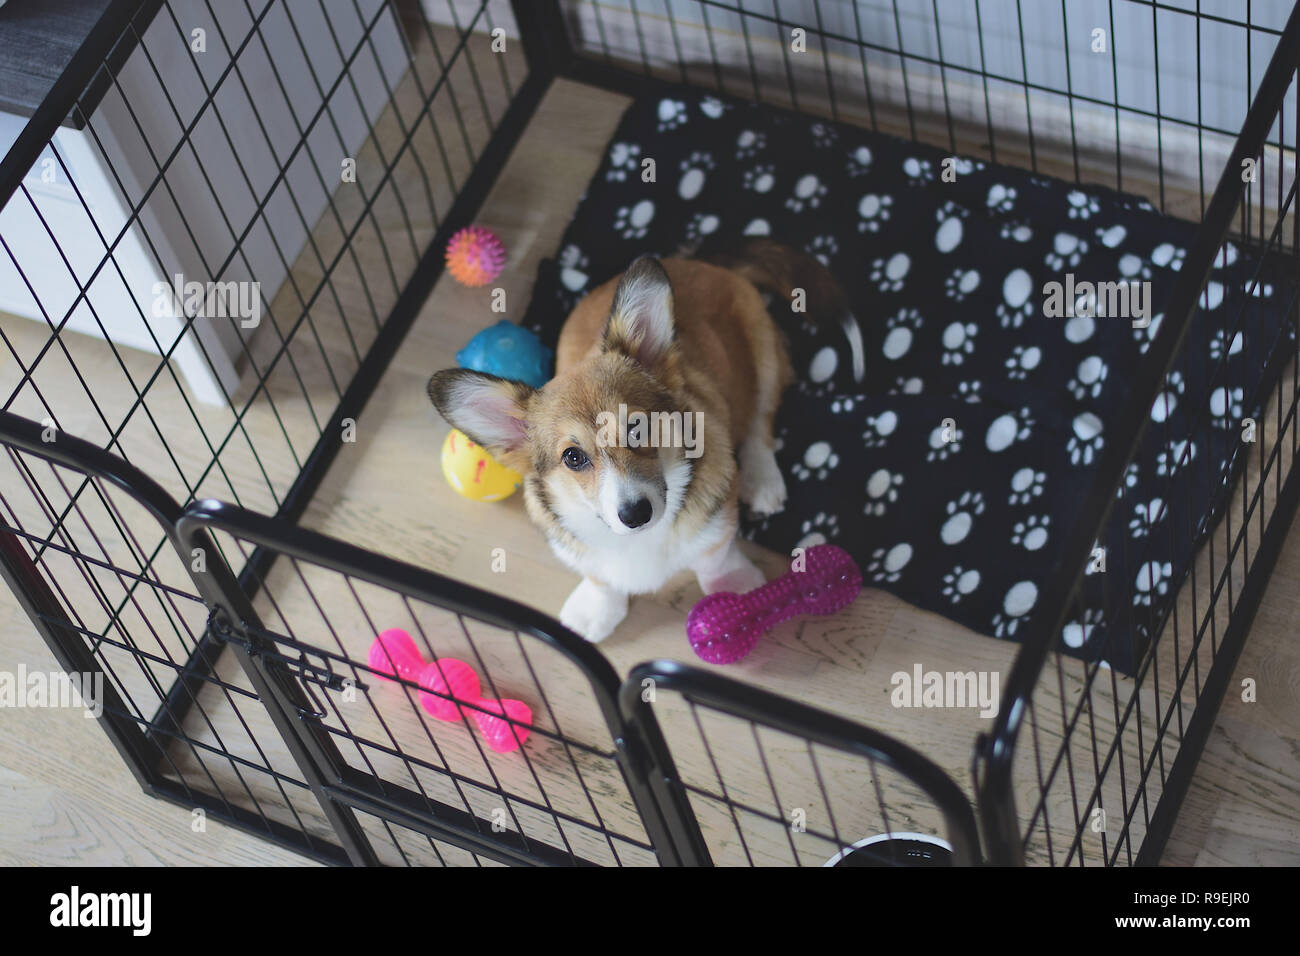 Welsh Corgi Pembroke Puppy Dog Sitting In A Crate During A Crate Training Stock Photo Alamy